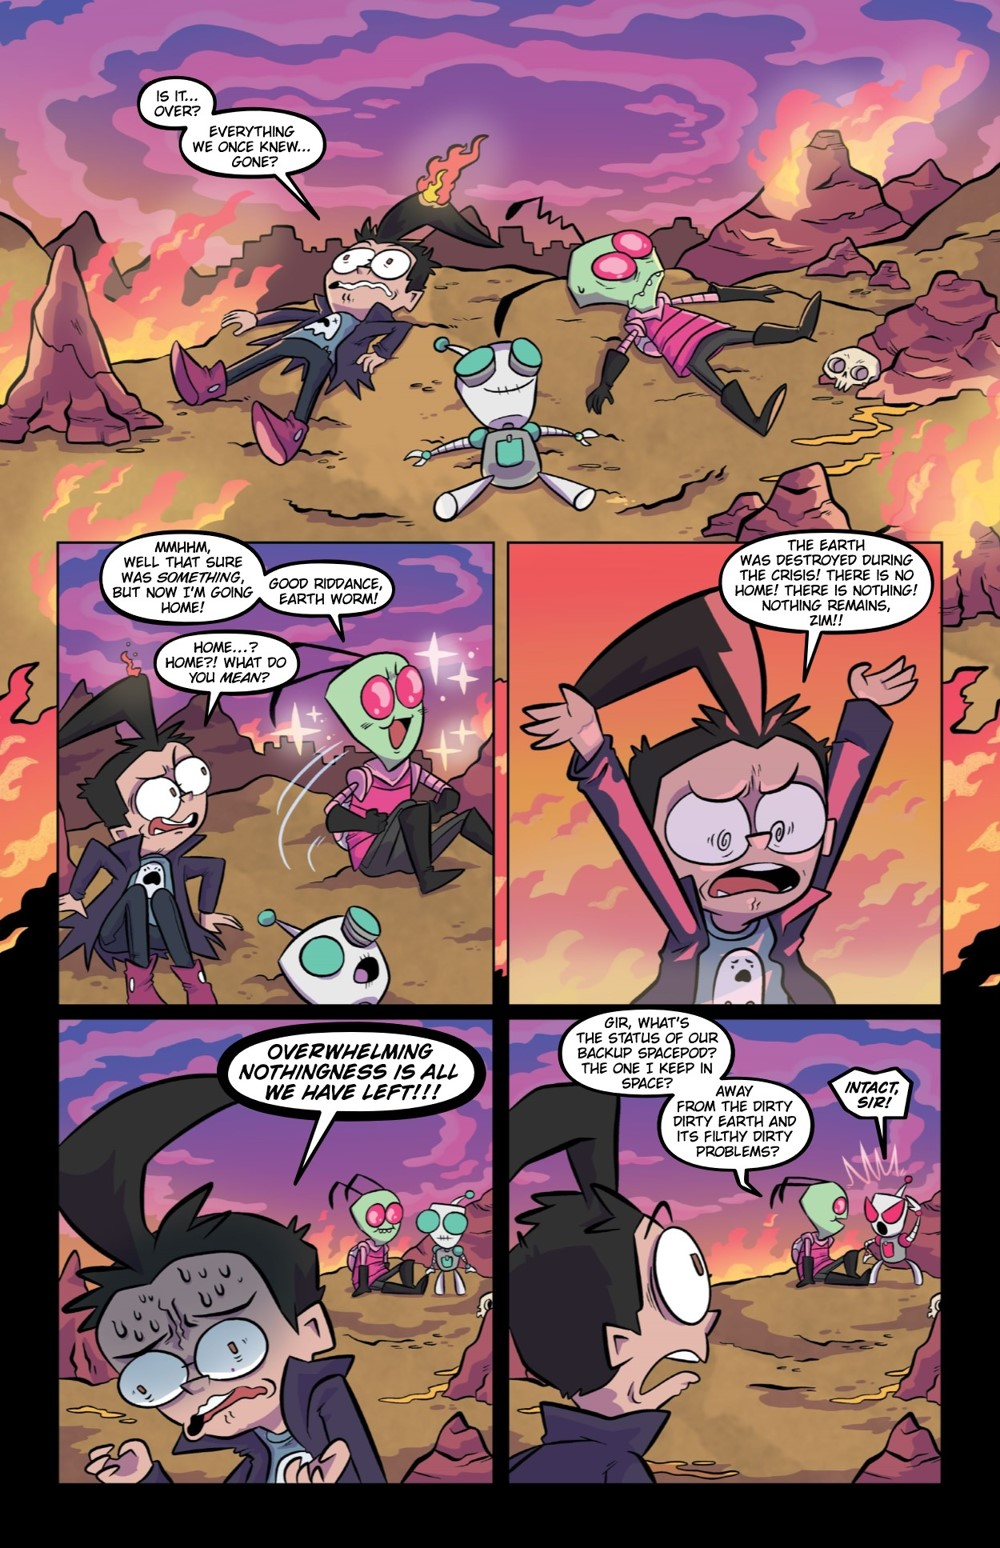 INVADERZIM5-HC-REFERENCE-006 ComicList Previews: INVADER ZIM DELUXE EDITION VOLUME 5 HC